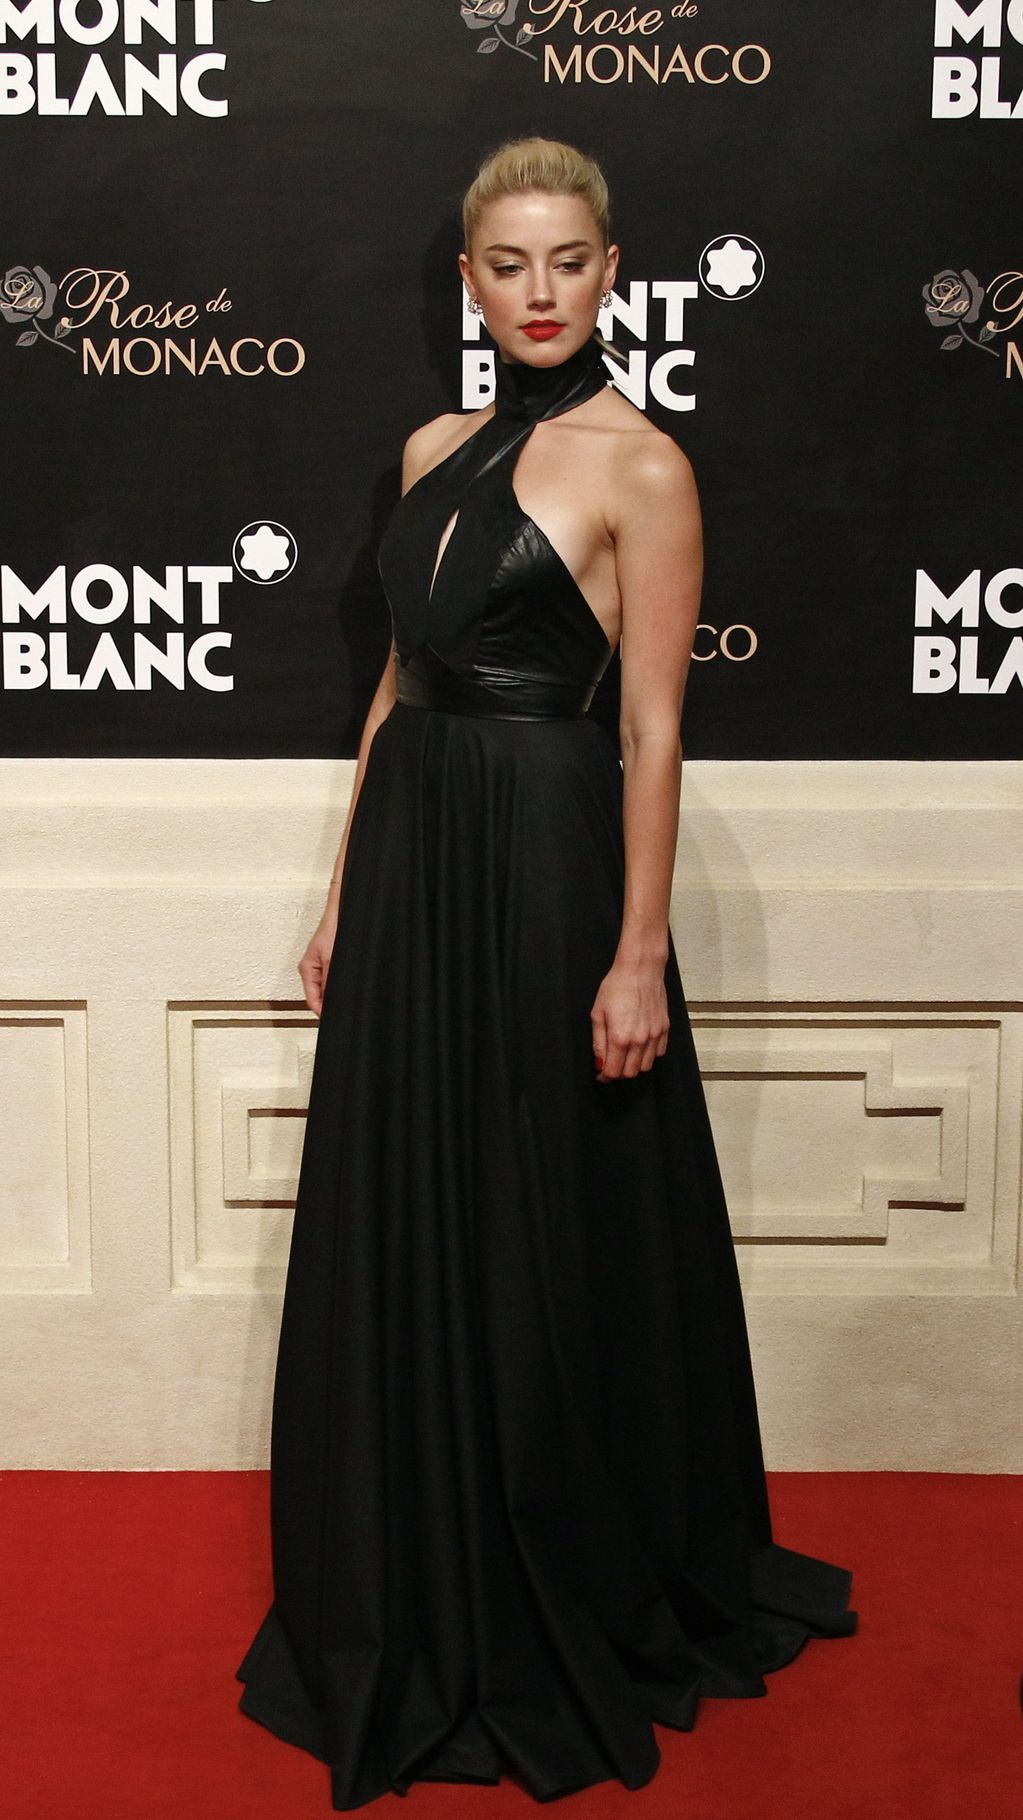 Amber Heard at the opening of Mont Blanc's Concept Store in Beijing, June 1st SO FIERCE